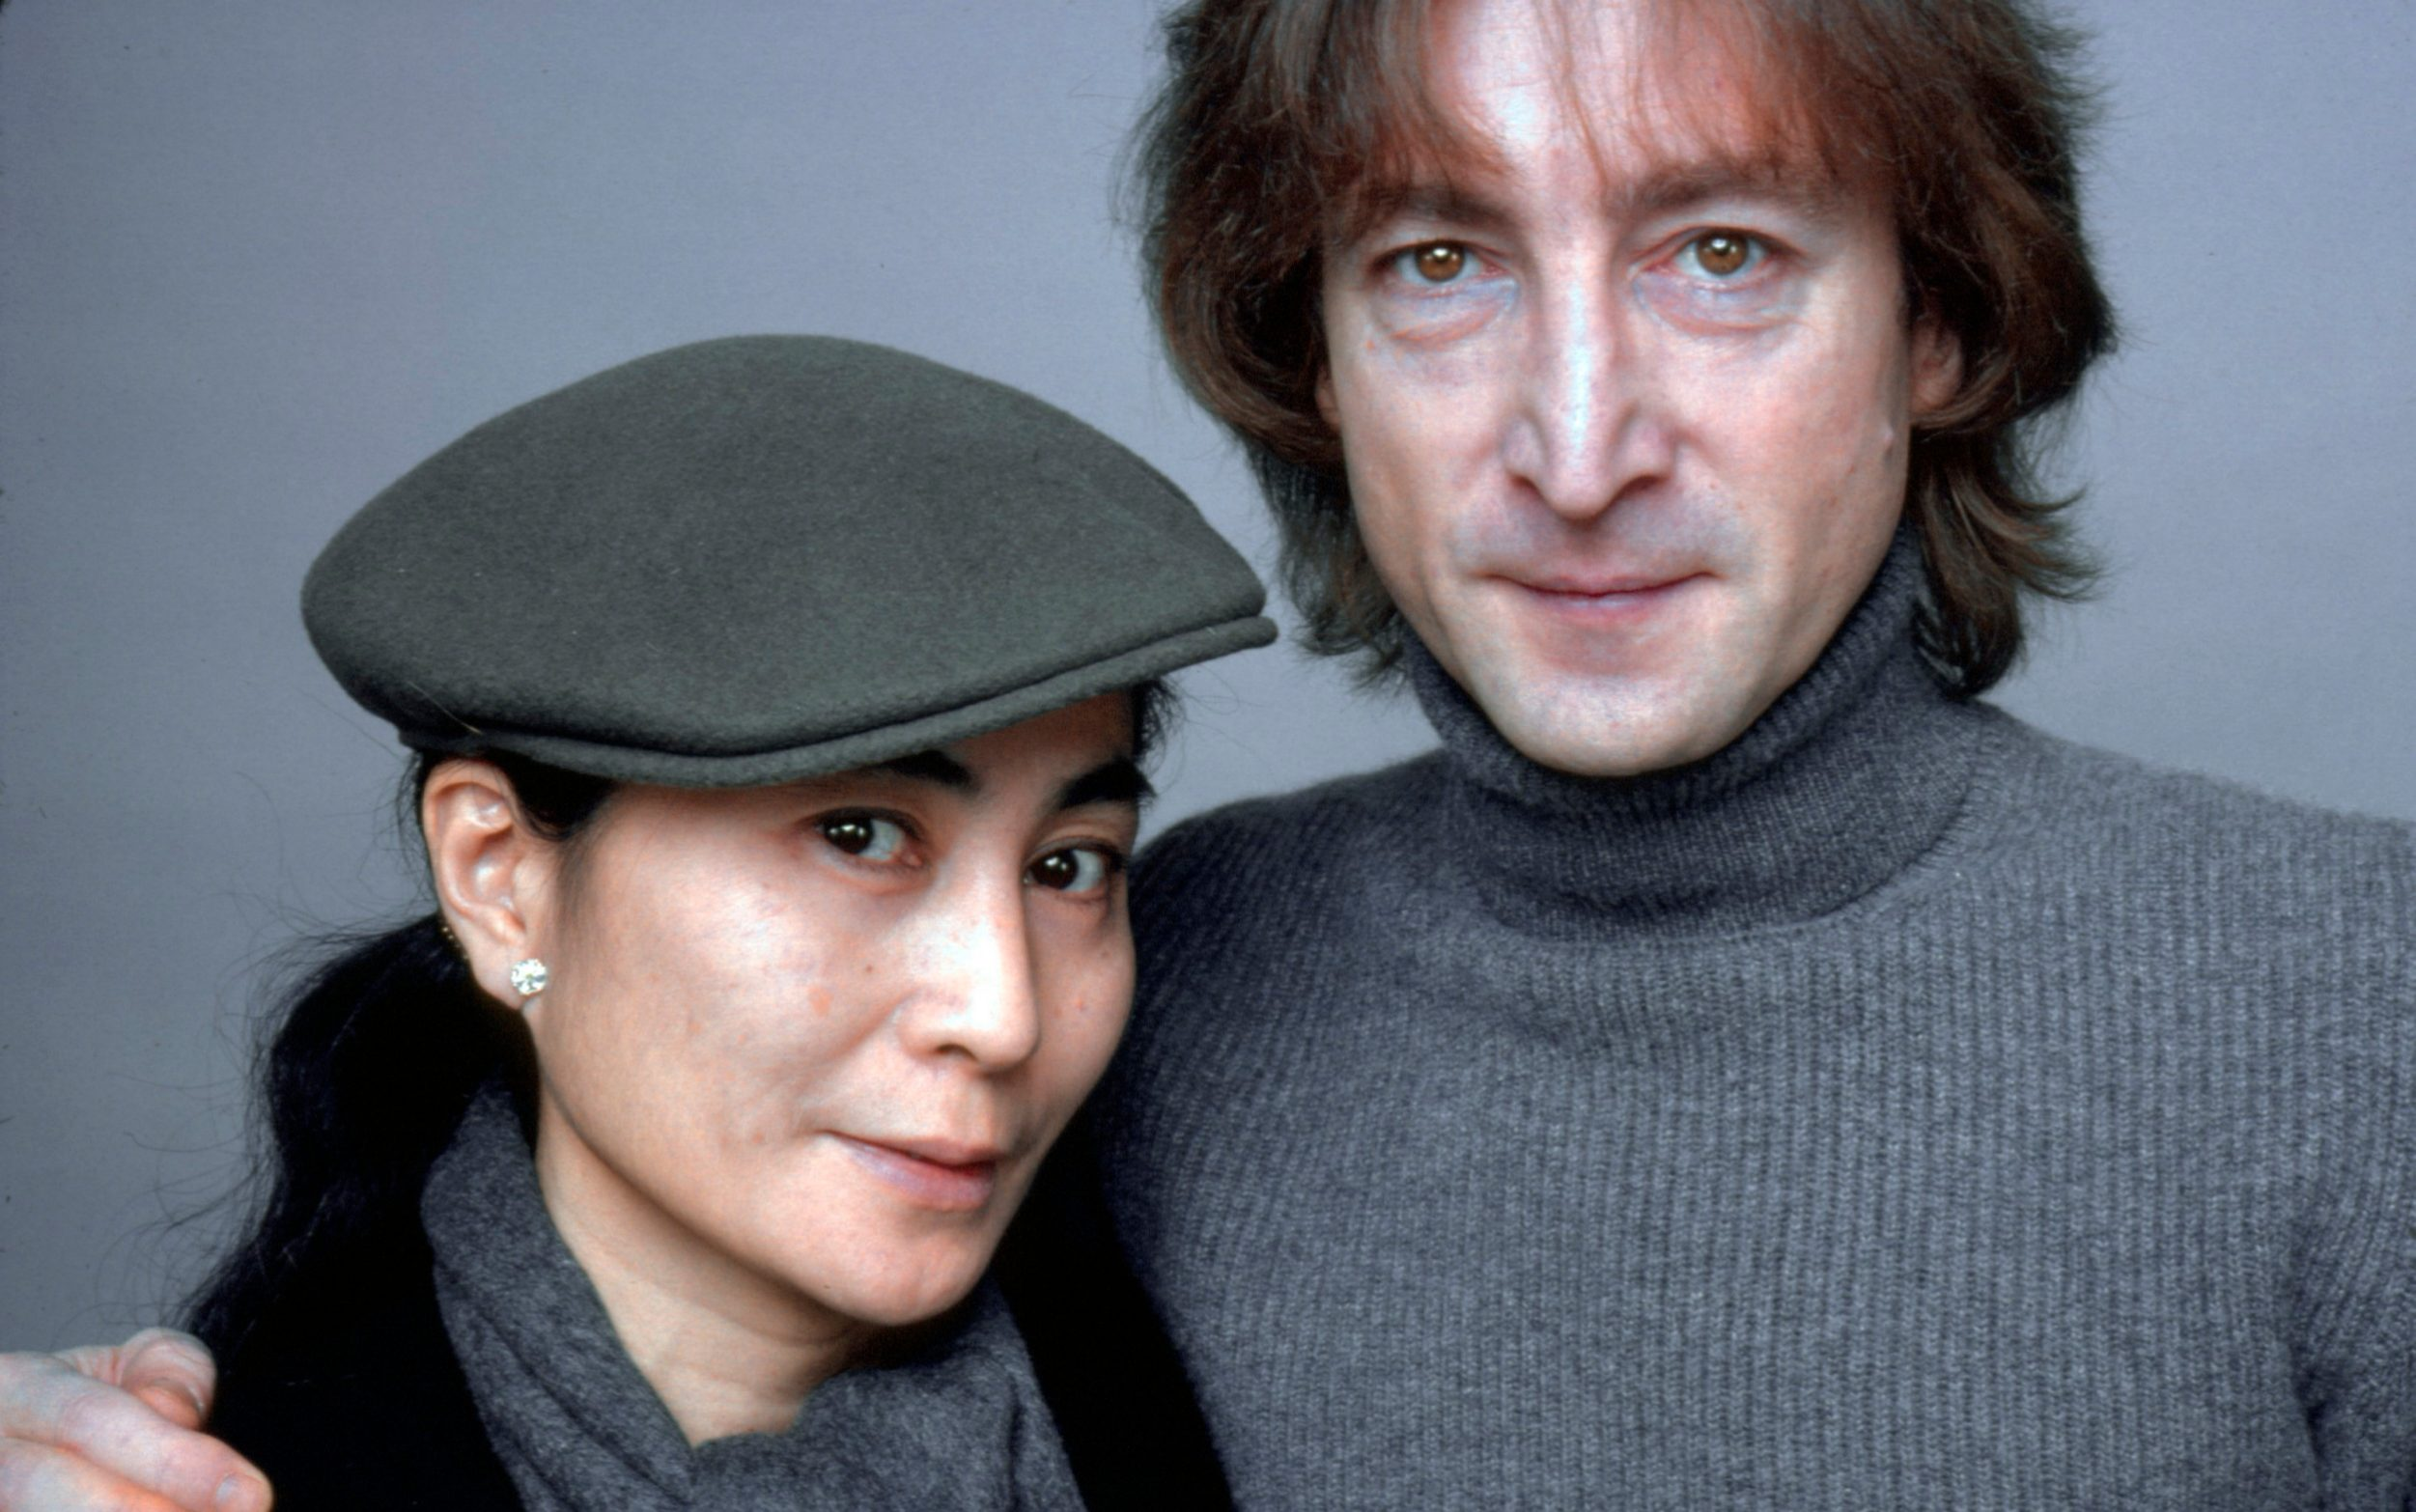 John Lennons killer apologises to Yoko Ono, saying he thinks about his crime all the time